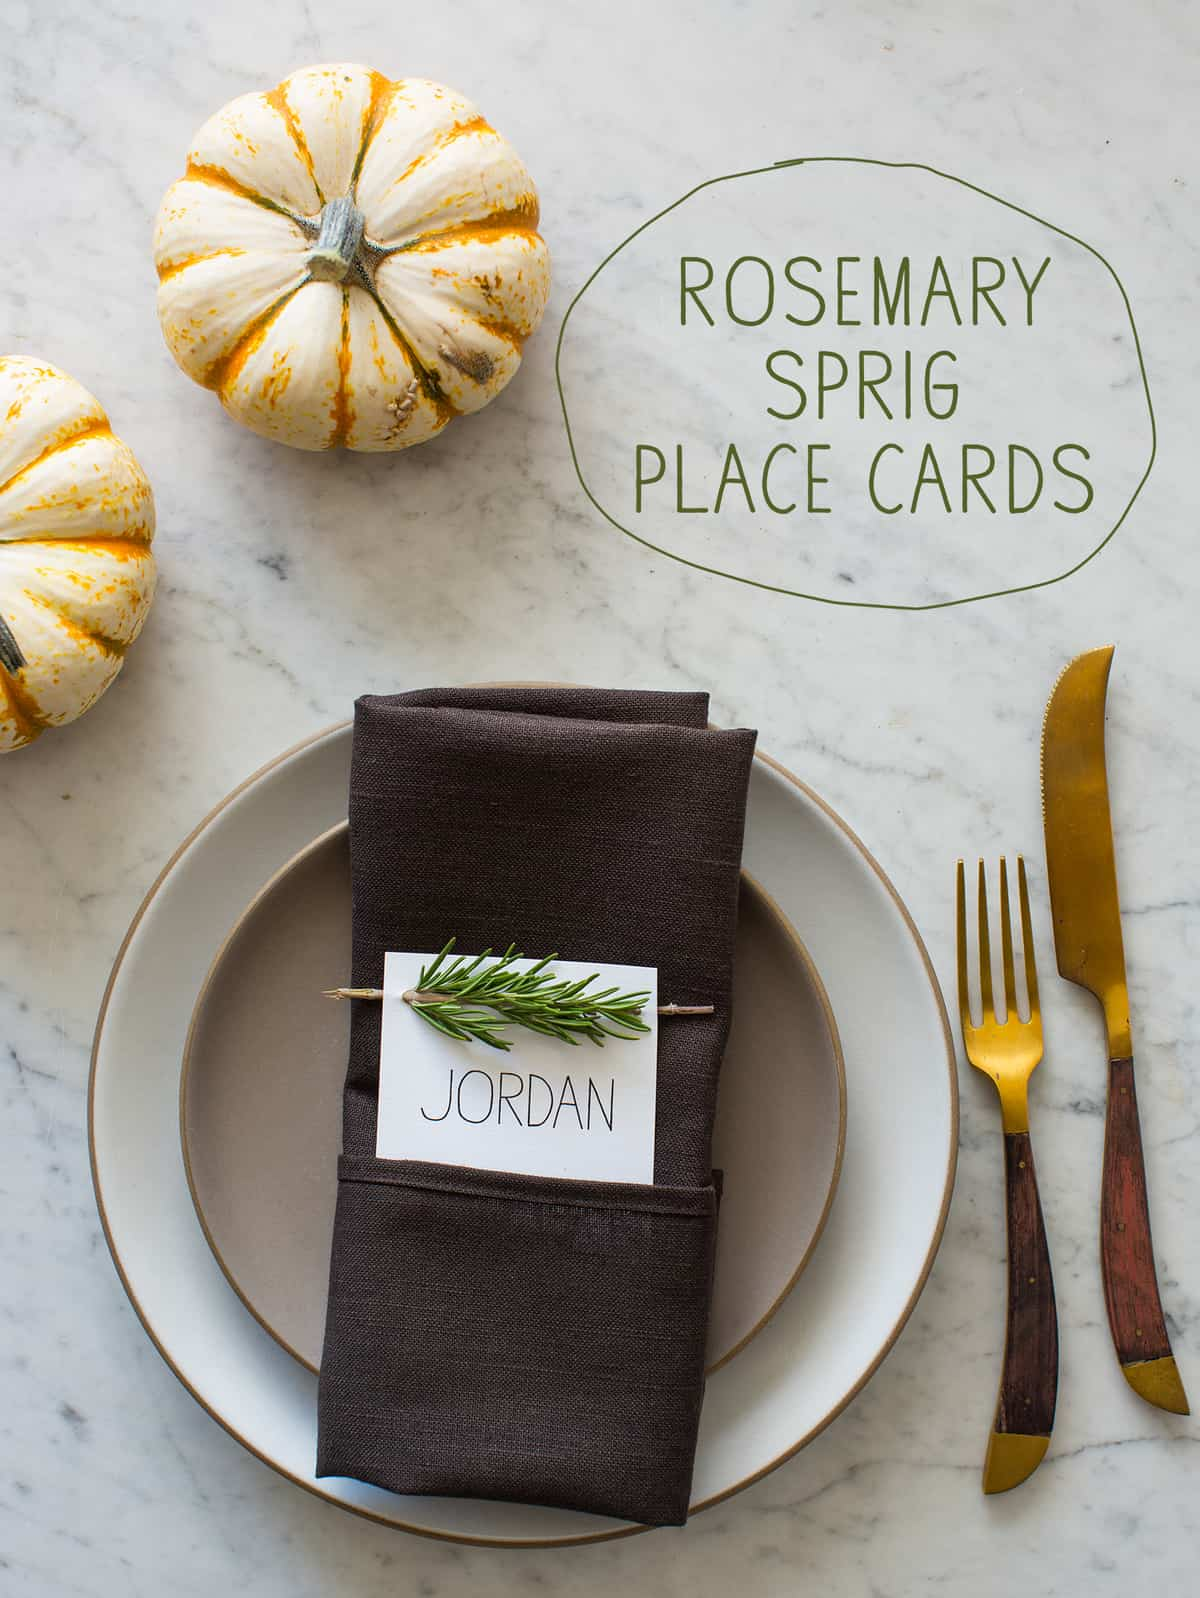 Rosemary sprig place cards diy place cards spoon fork for Diy thanksgiving table place cards